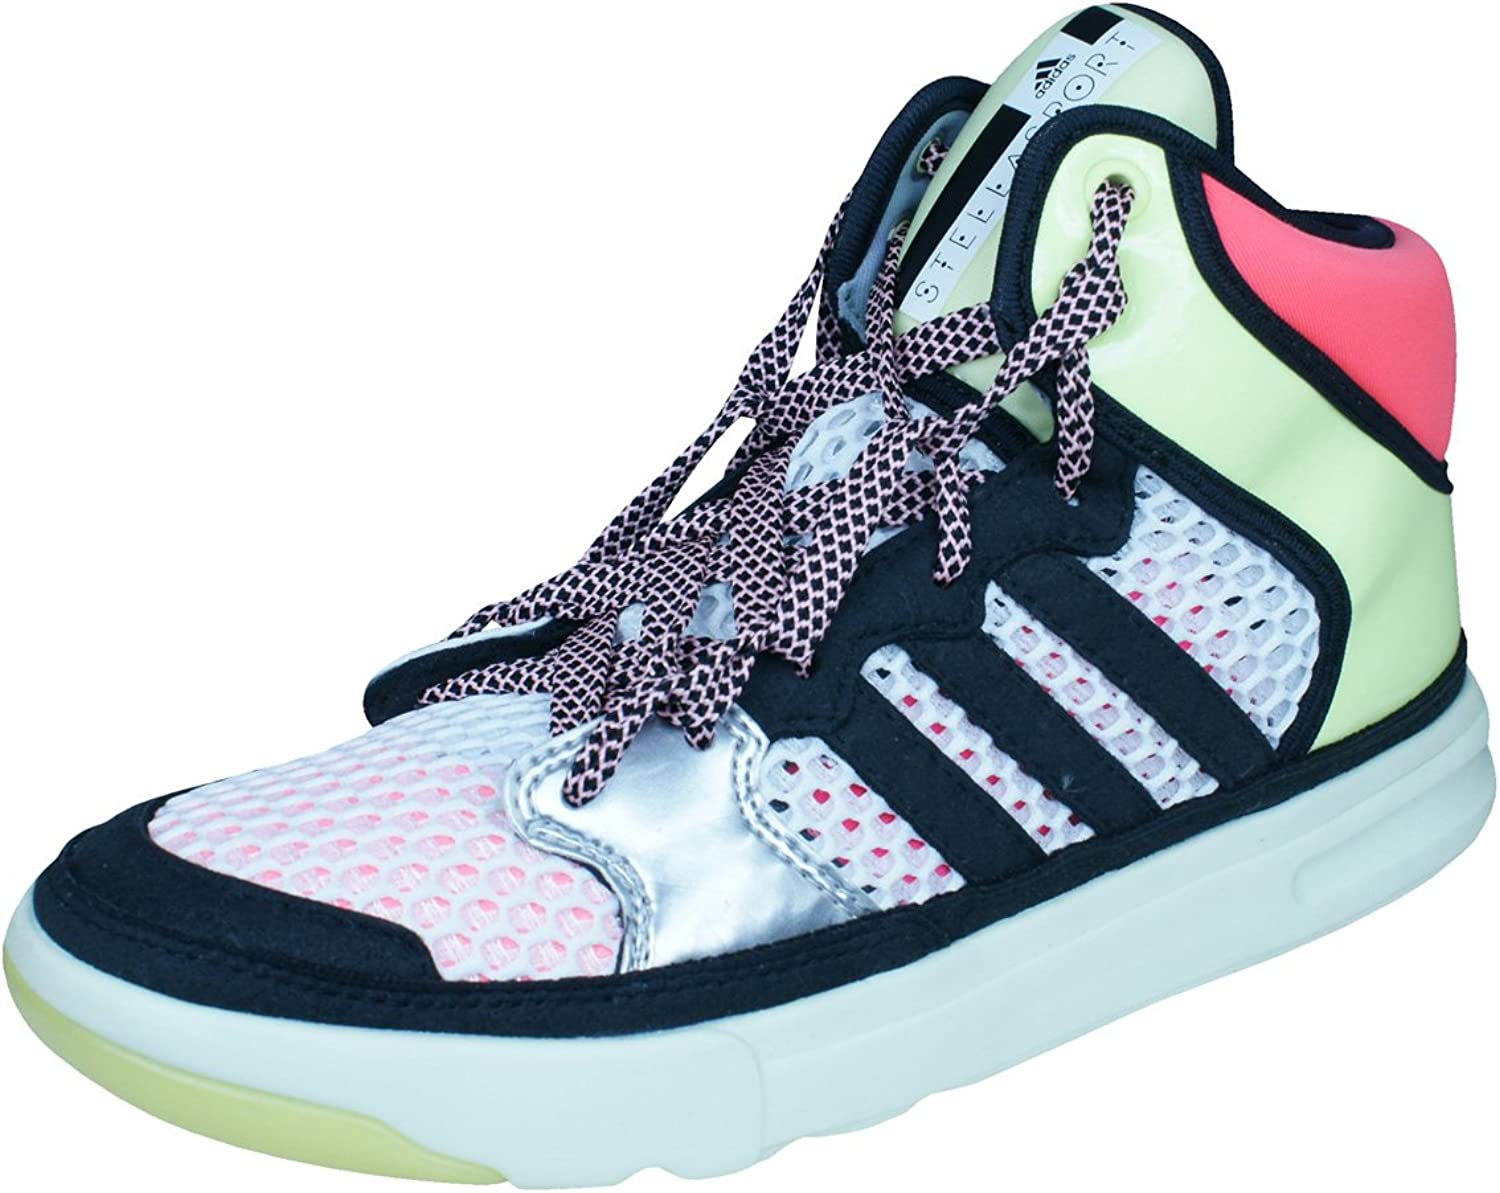 Adidas StellaSport Irana by Stella McCartney Womens Fitness Sneakers   shoes